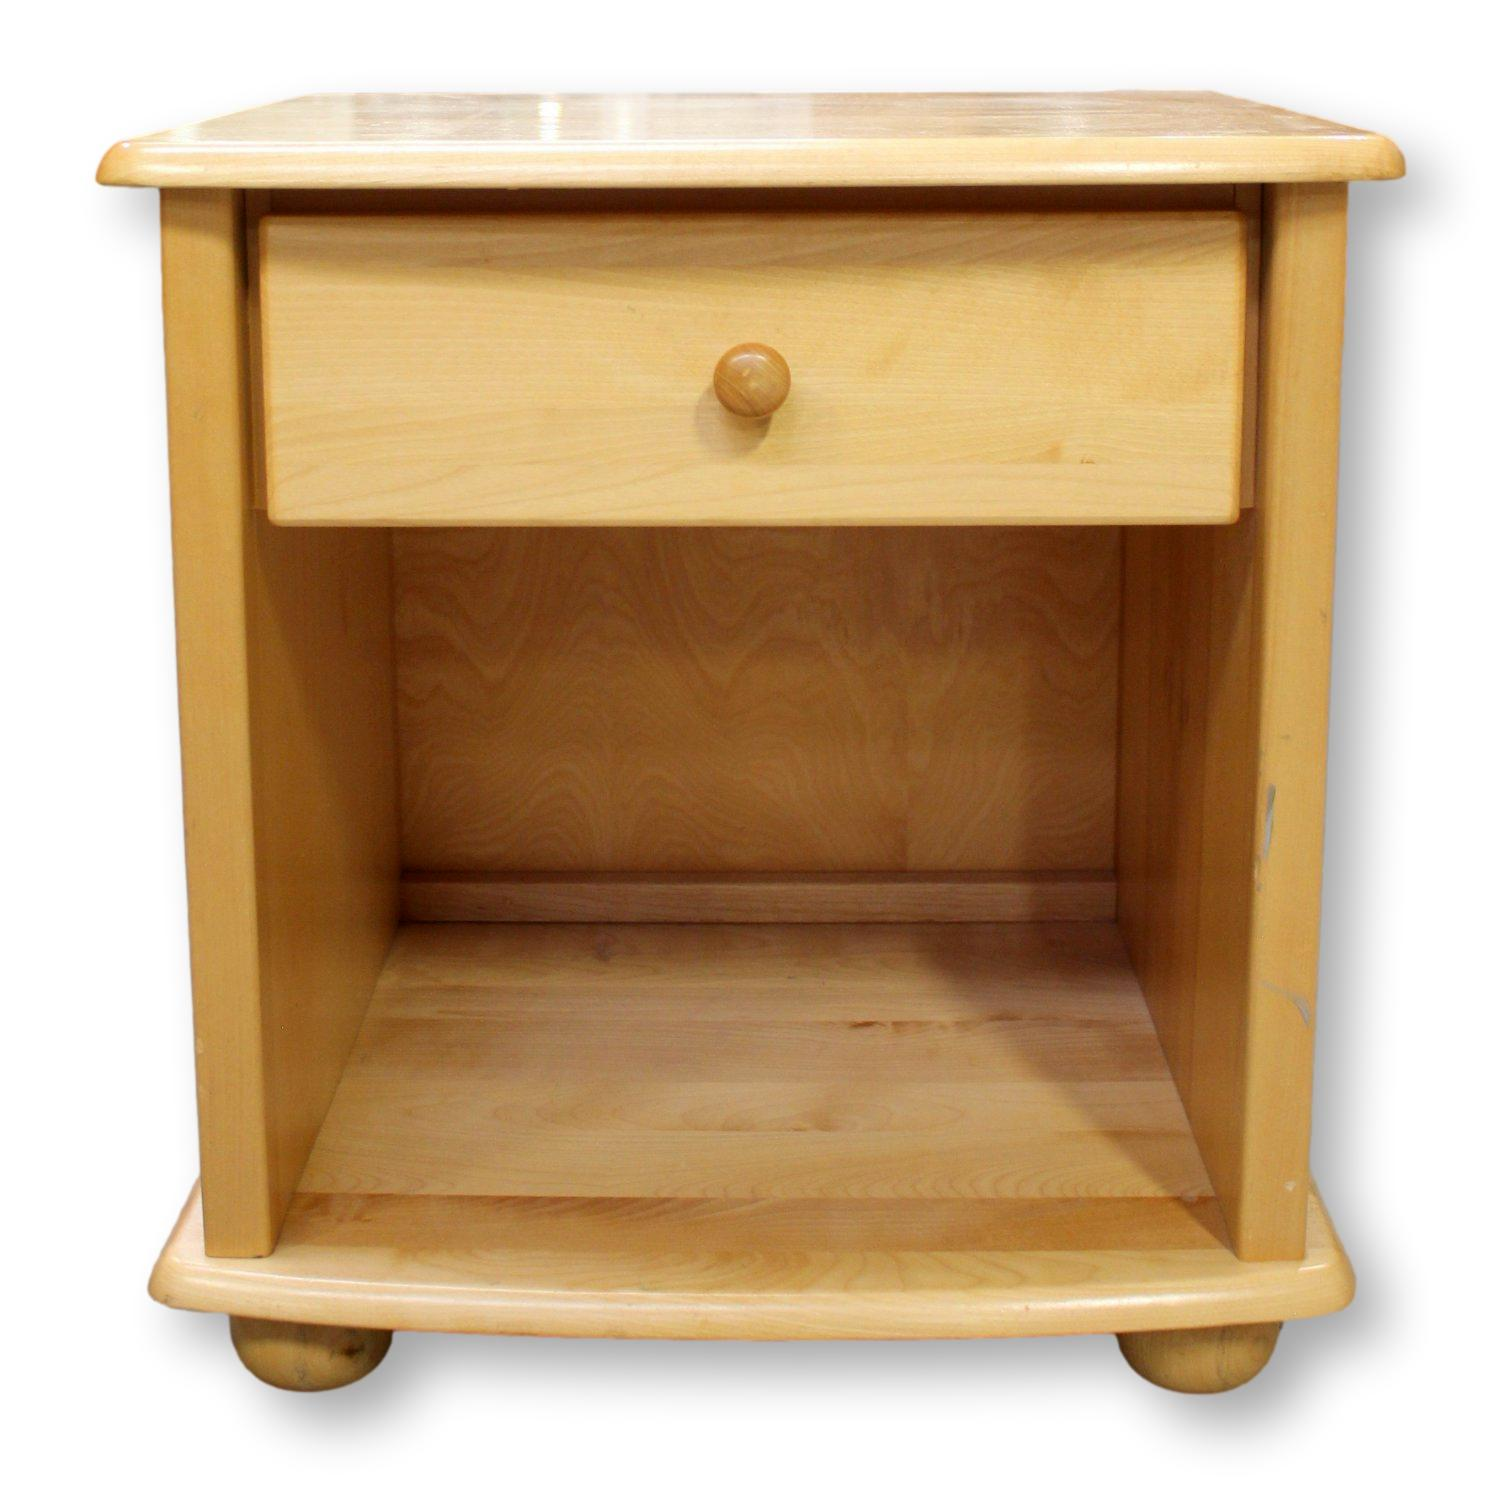 Solid-Maple-Nightstand_93270A.jpg